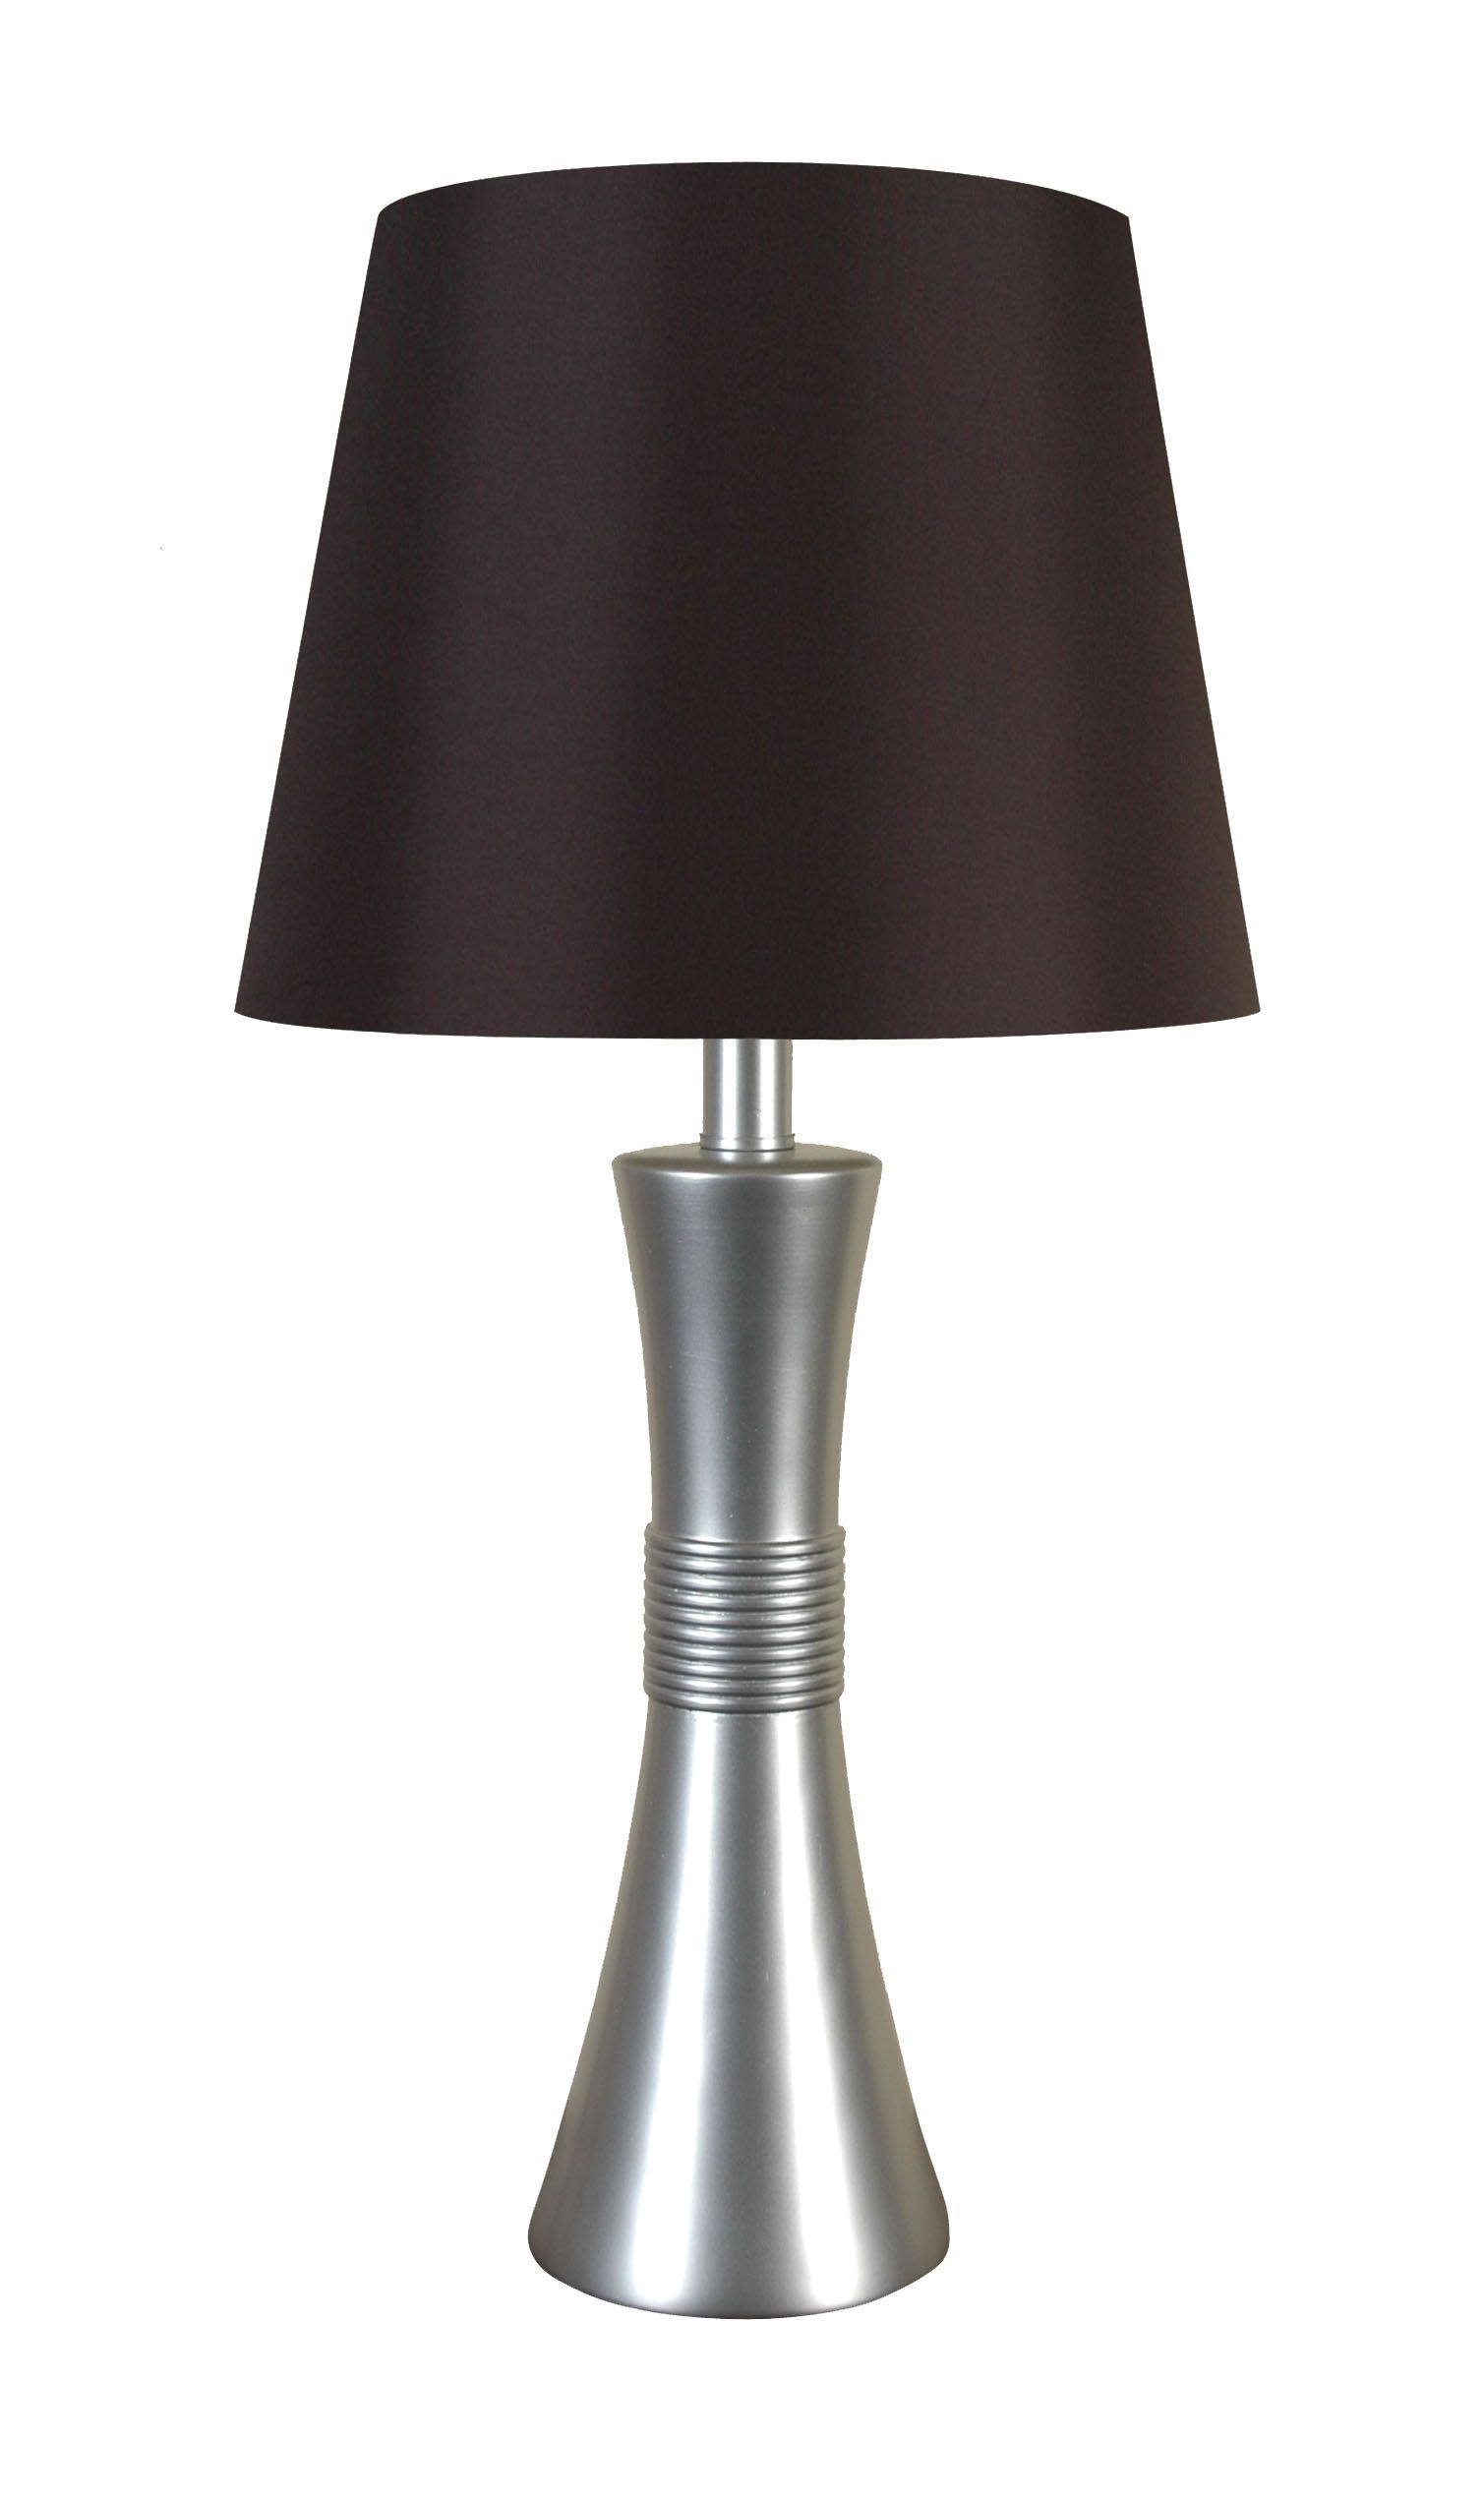 LPS 003A: Metal Table Lamp With Silver Finish By Lamps Per Se